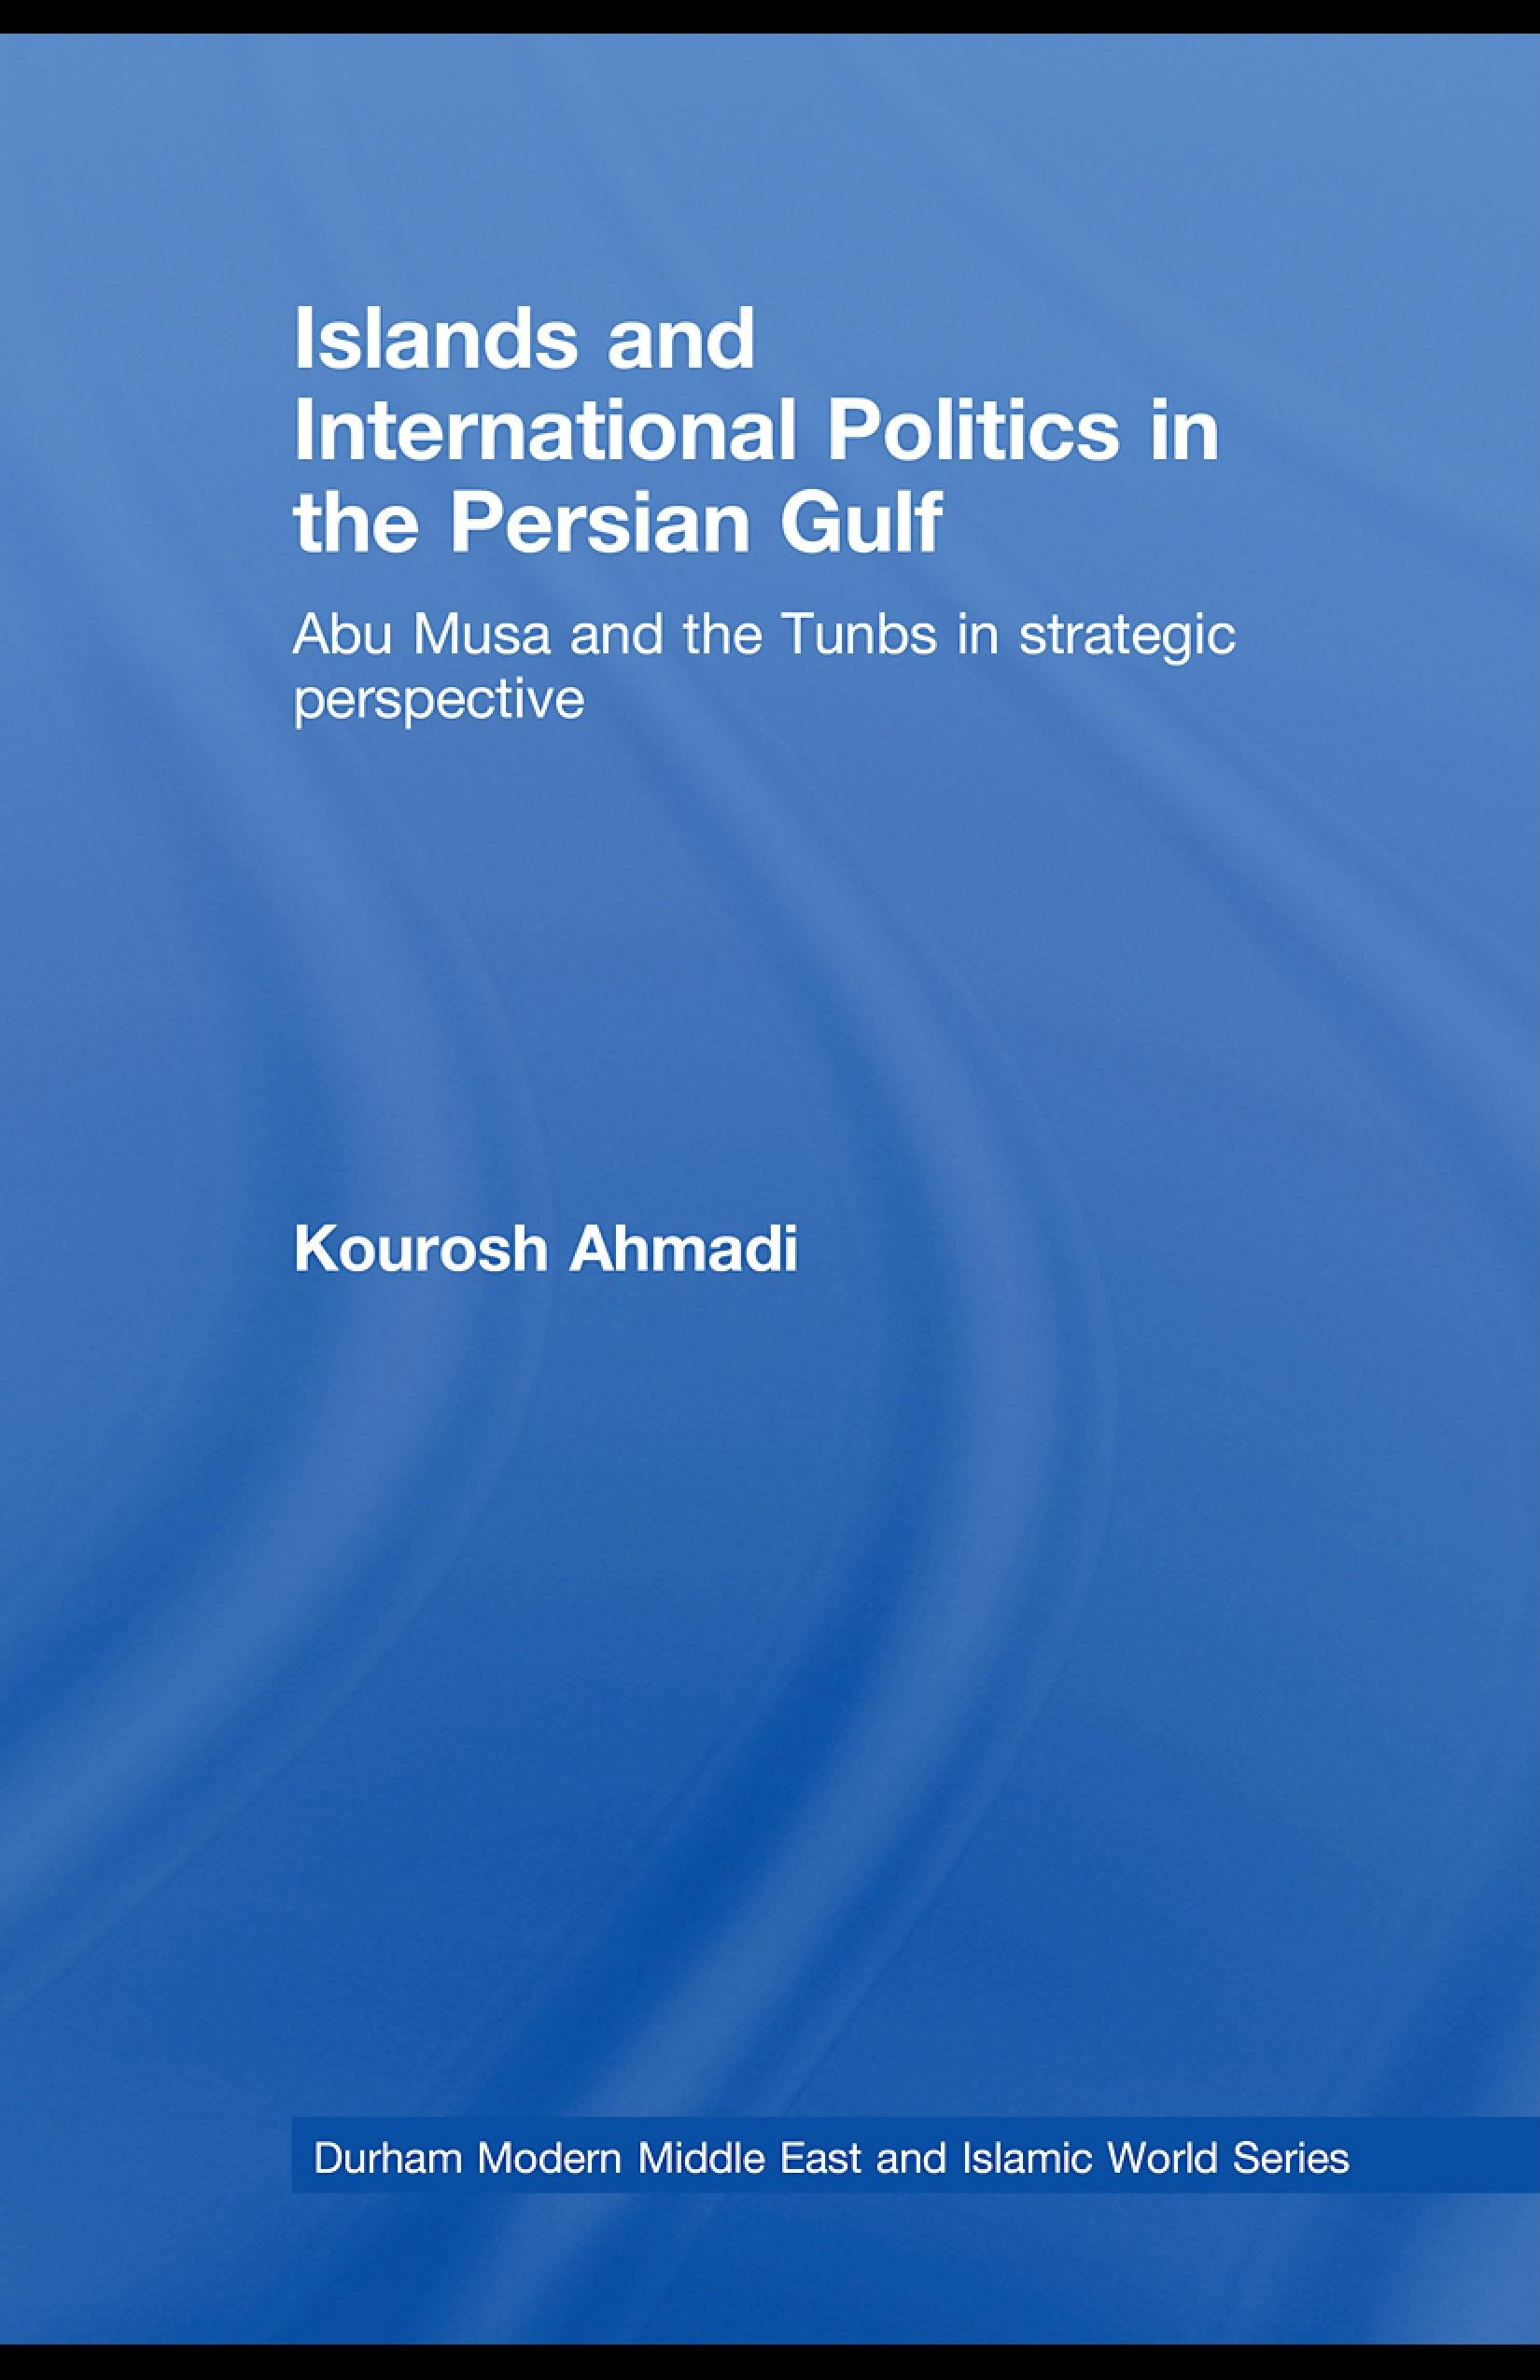 Islands and International Politics in the Persian Gulf: The Abu Musa and Tunbs in Strategic Context EB9780203928714